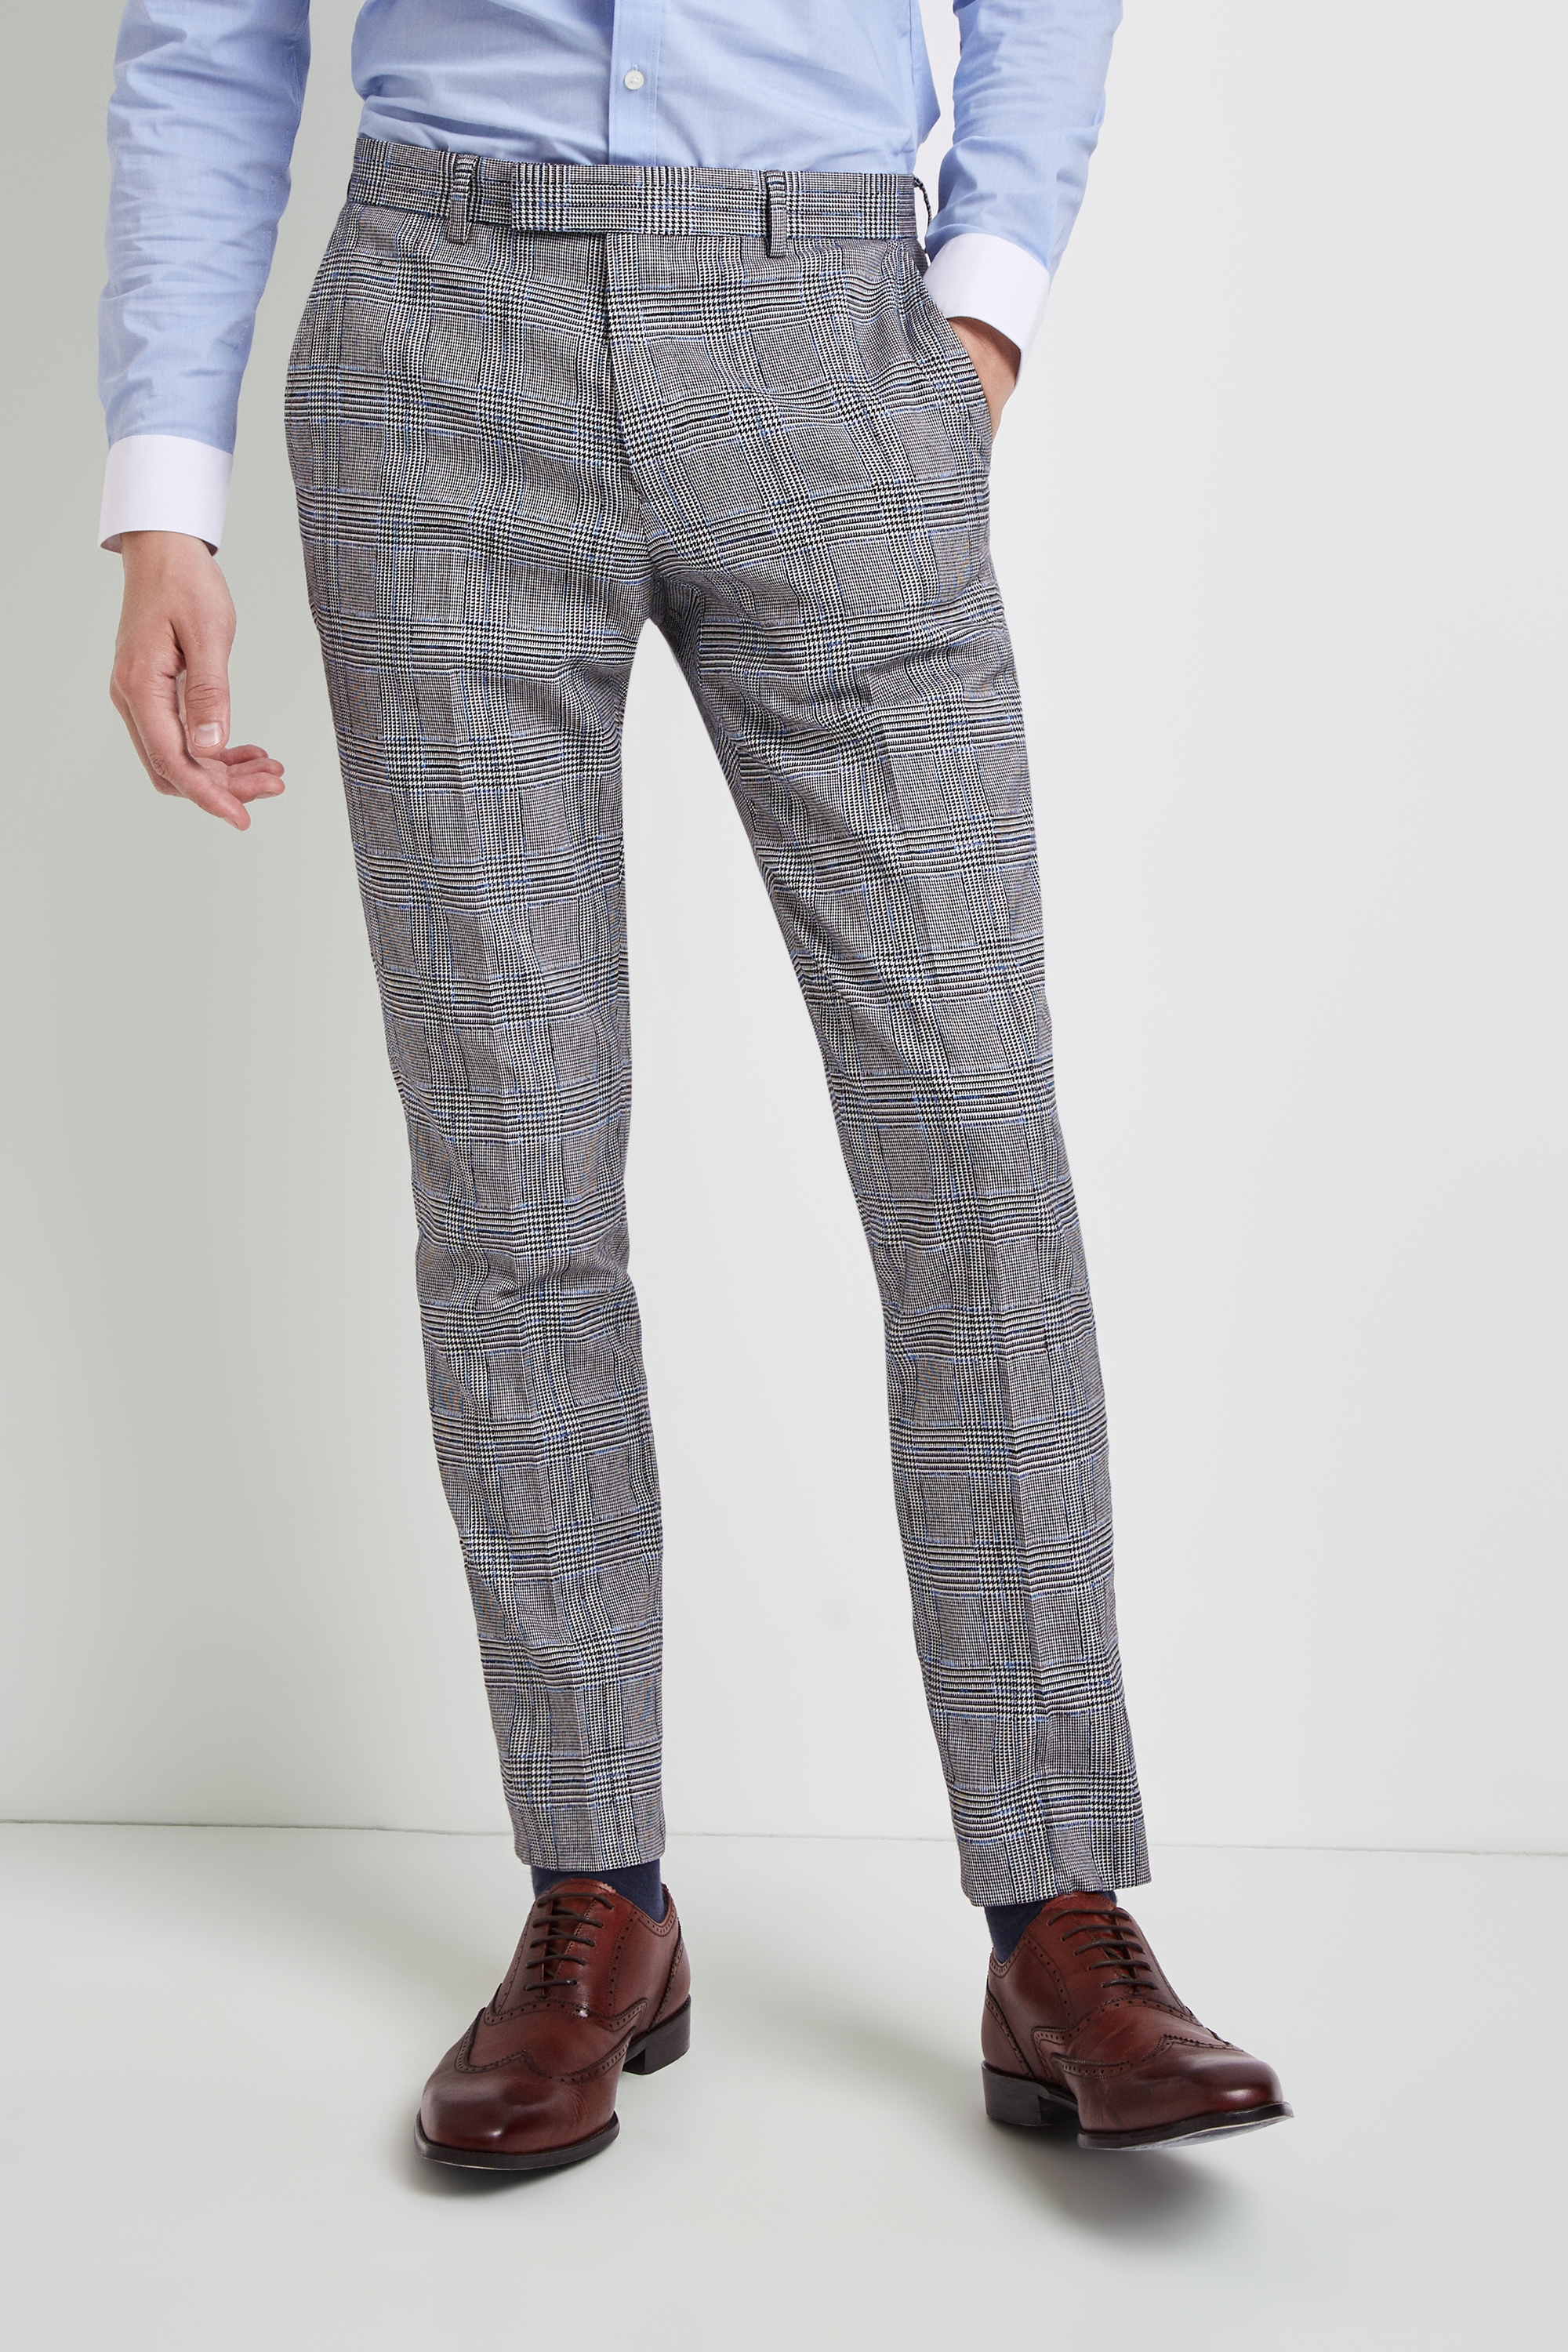 Moss Bros Moss London Skinny Fit Black and White Sky Trousers